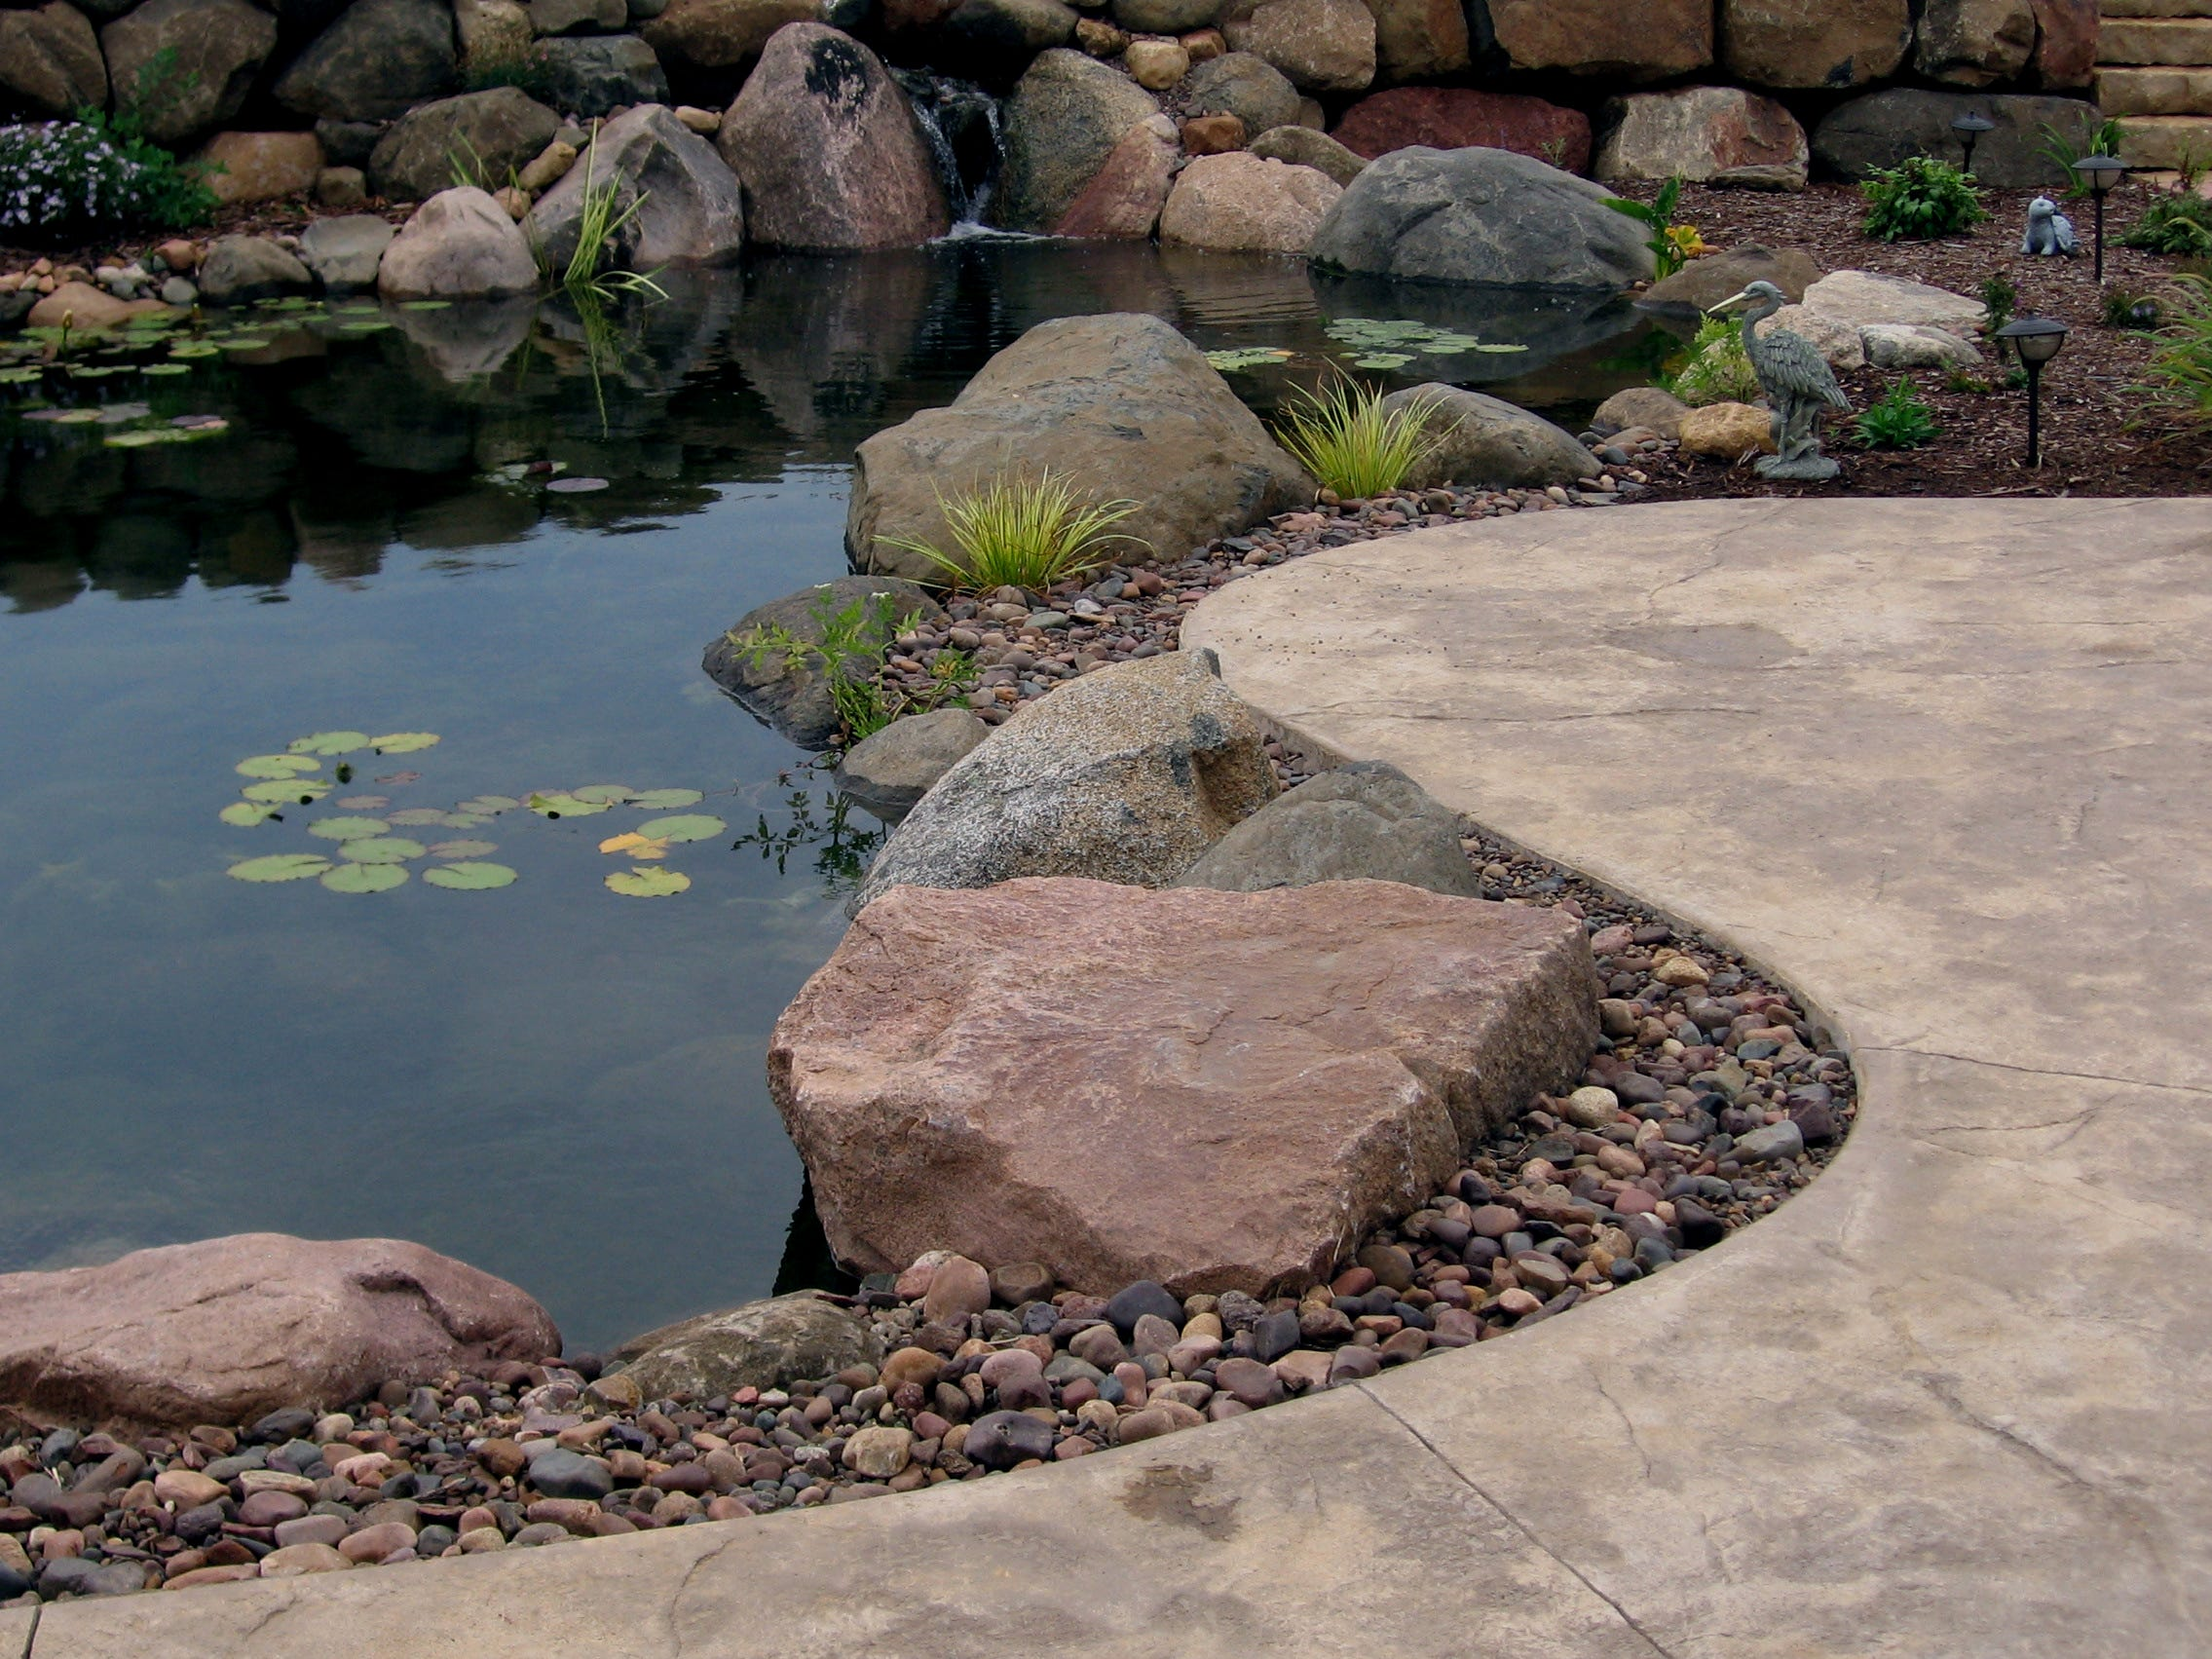 This typical pond edge uses different sizes of boulders to create a natural look. It's built right up to the edge of the patio, which allows interacting with and viewing of a water feature. A large seat stone invites homeowners to sit and dangle their feet in the water.